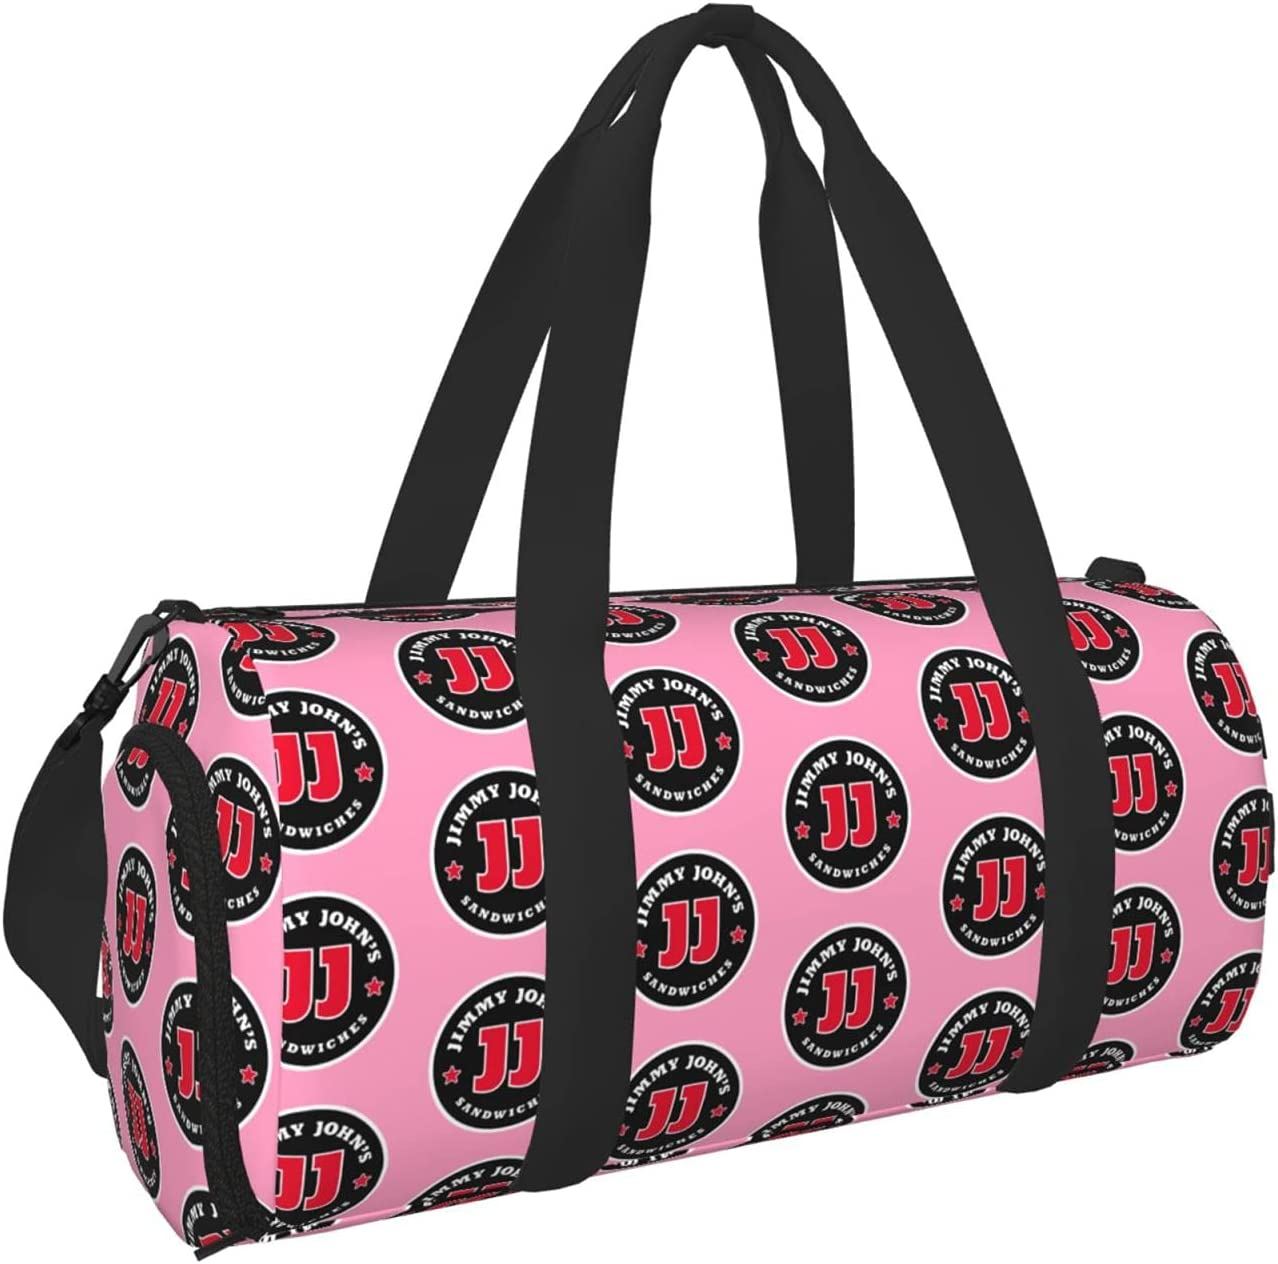 Jimmy Johns Duffel Bag Sport Selling rankings Gym Travel Max 89% OFF Backpack Bags With Tote